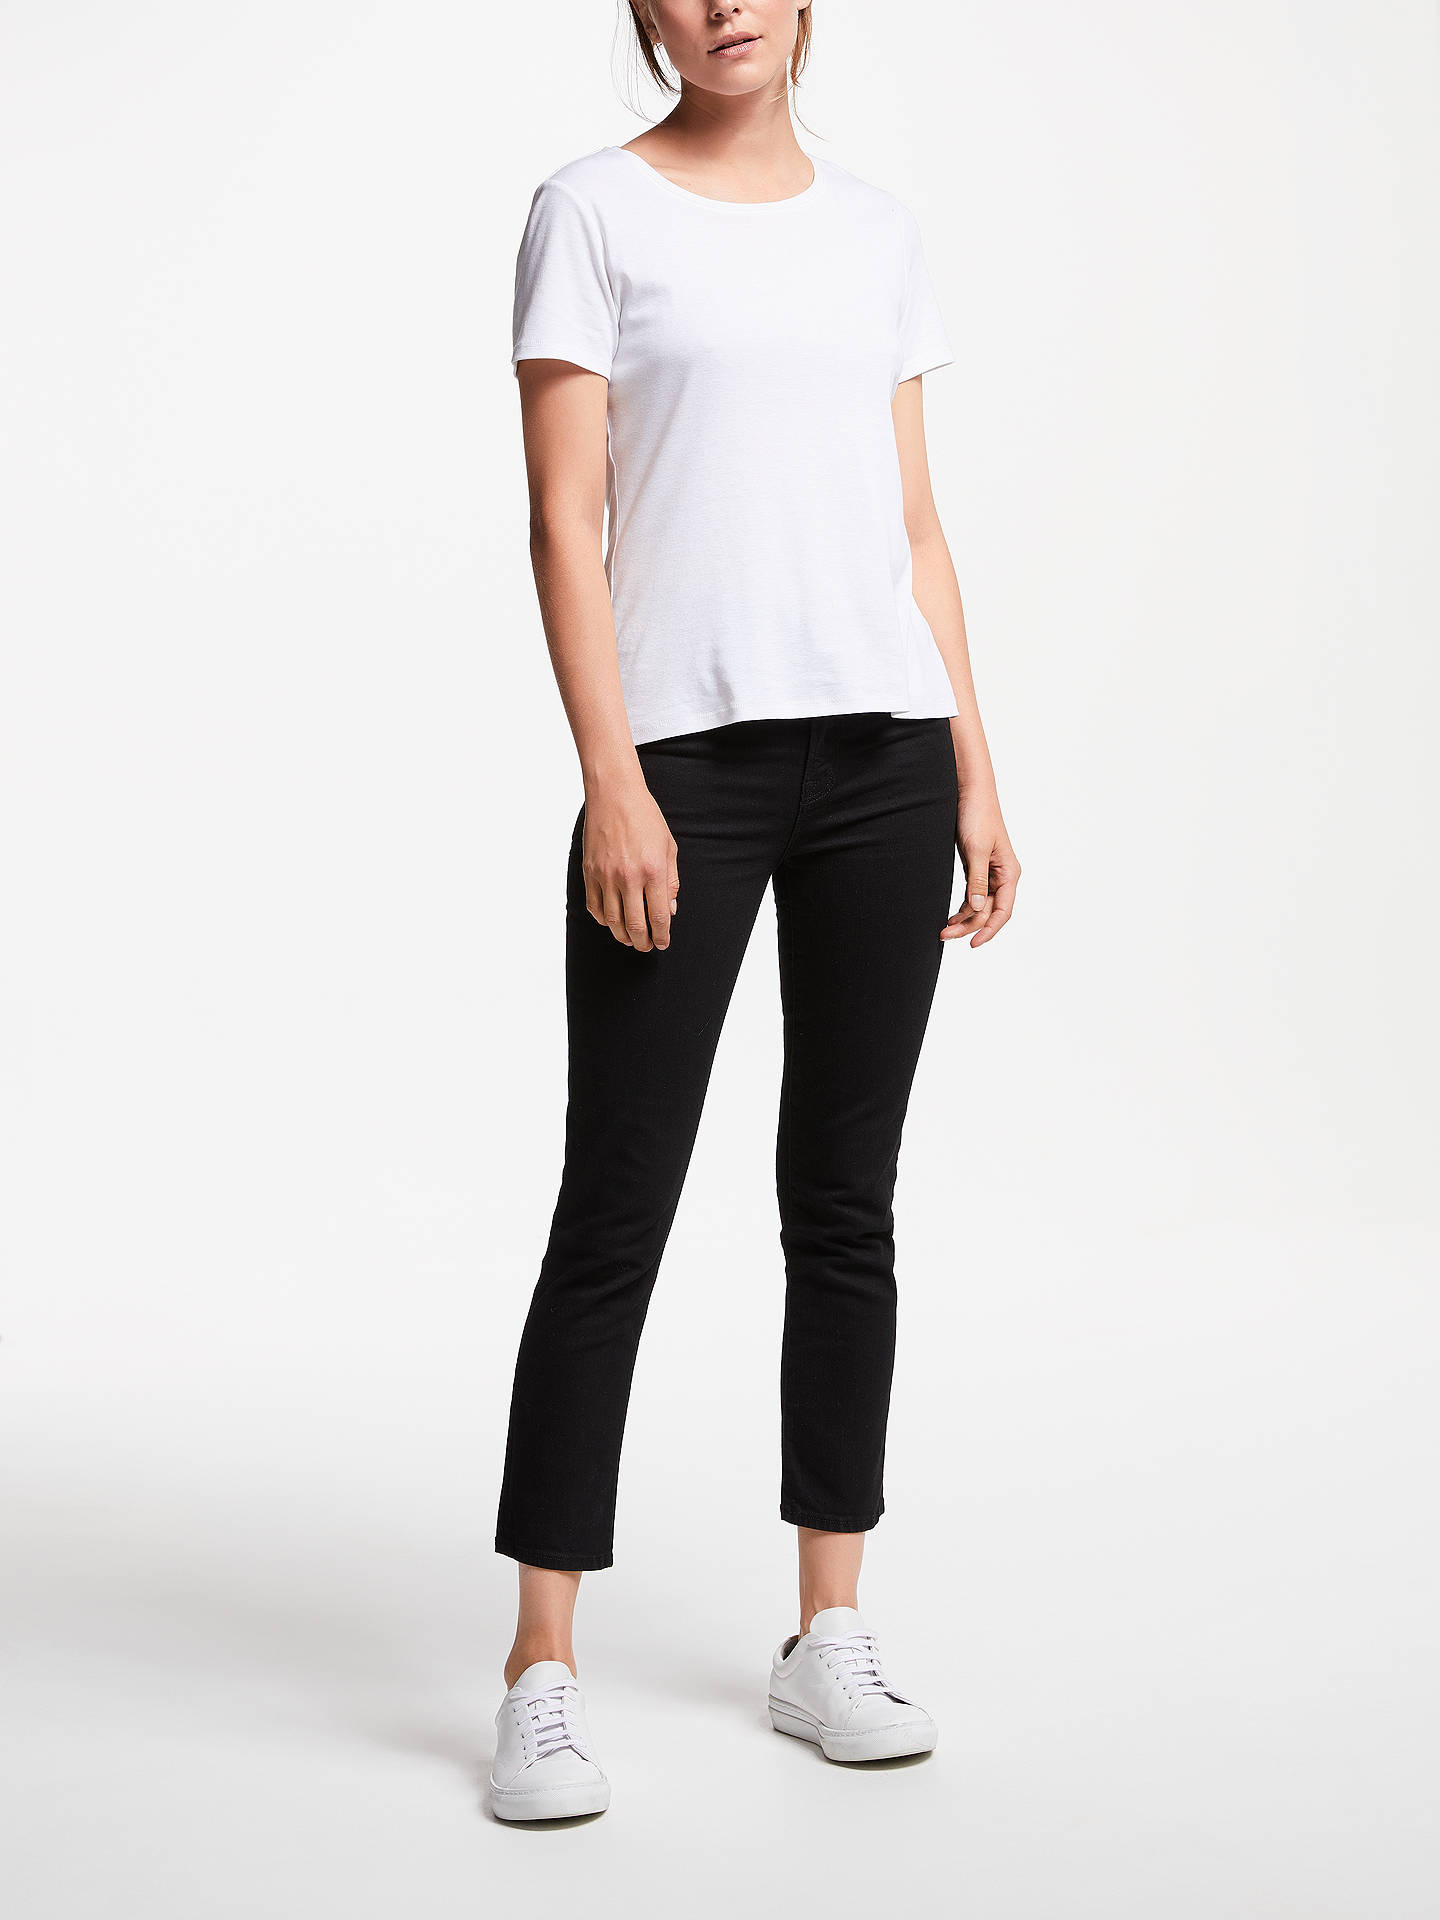 BuyJ. Brand Ruby High Rise Skinny Cropped Jeans, Black, 28 Online at johnlewis.com